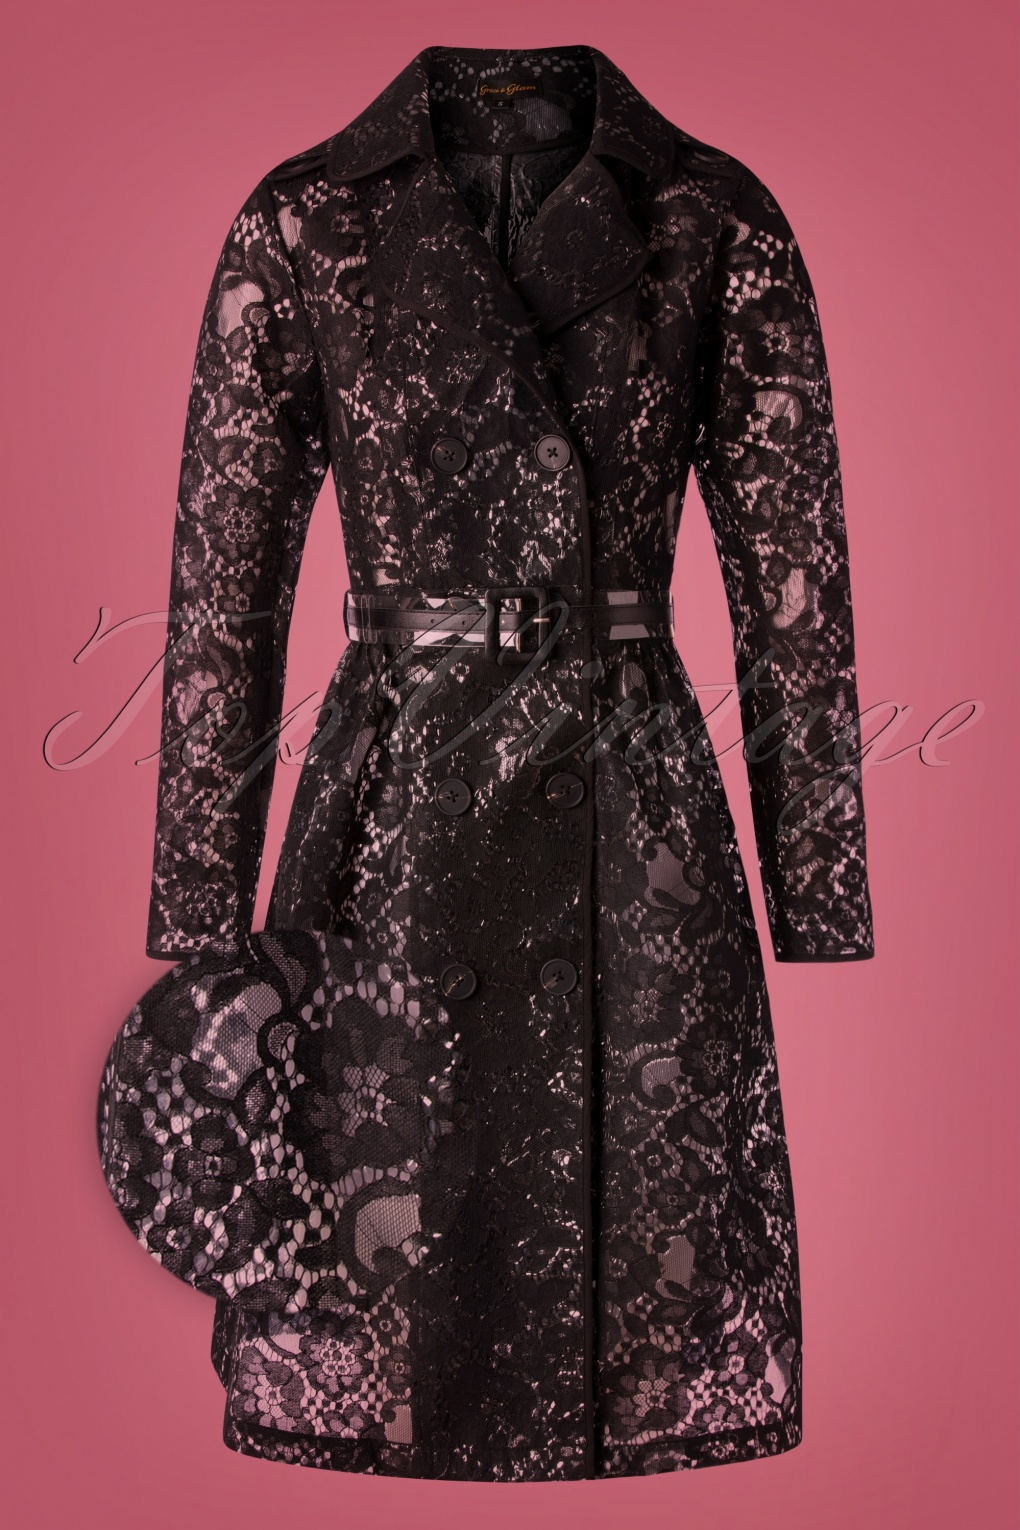 Vintage Coats & Jackets | Retro Coats and Jackets 50s Lucinda Lace Raincoat in Black £175.06 AT vintagedancer.com